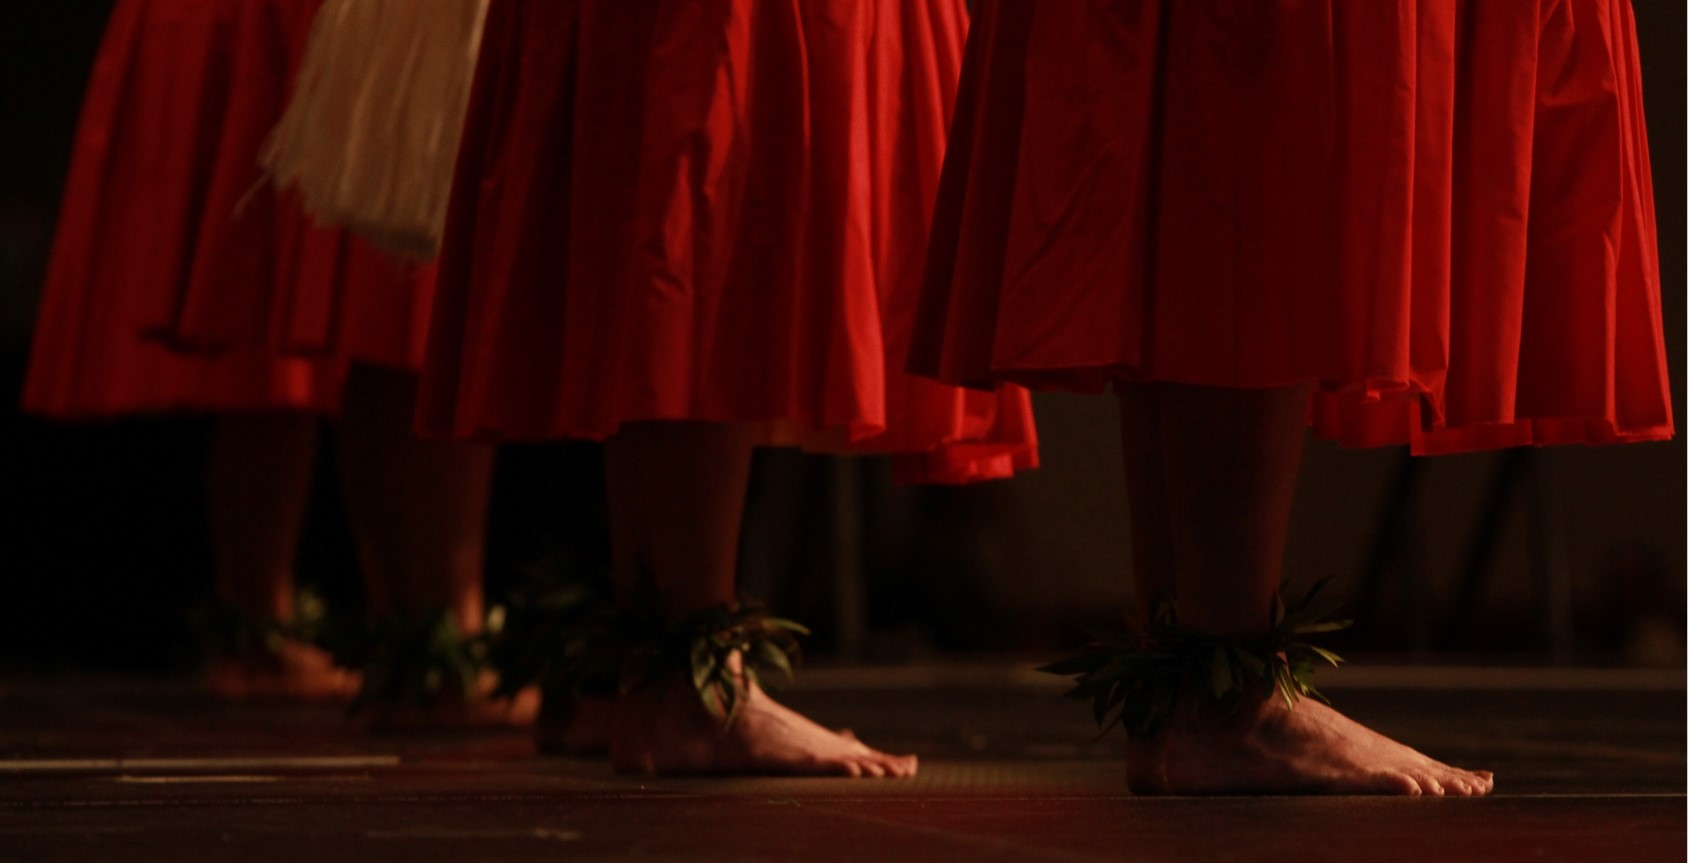 Dancers feet HOSW img 8436 crop